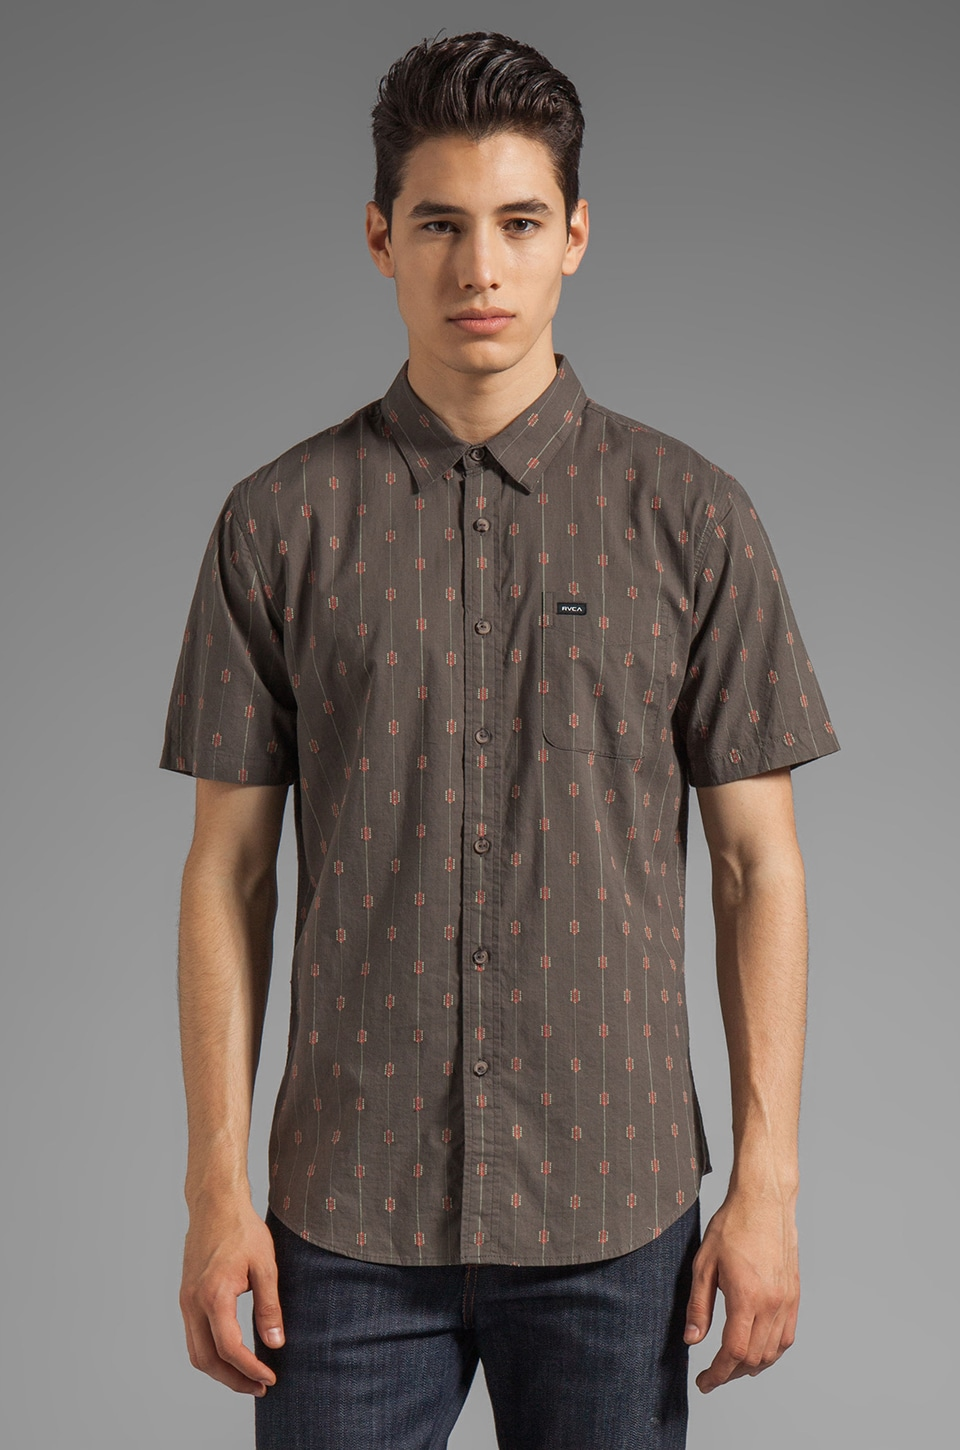 RVCA Sumac Short Sleeve Shirt in Dark Charcoal